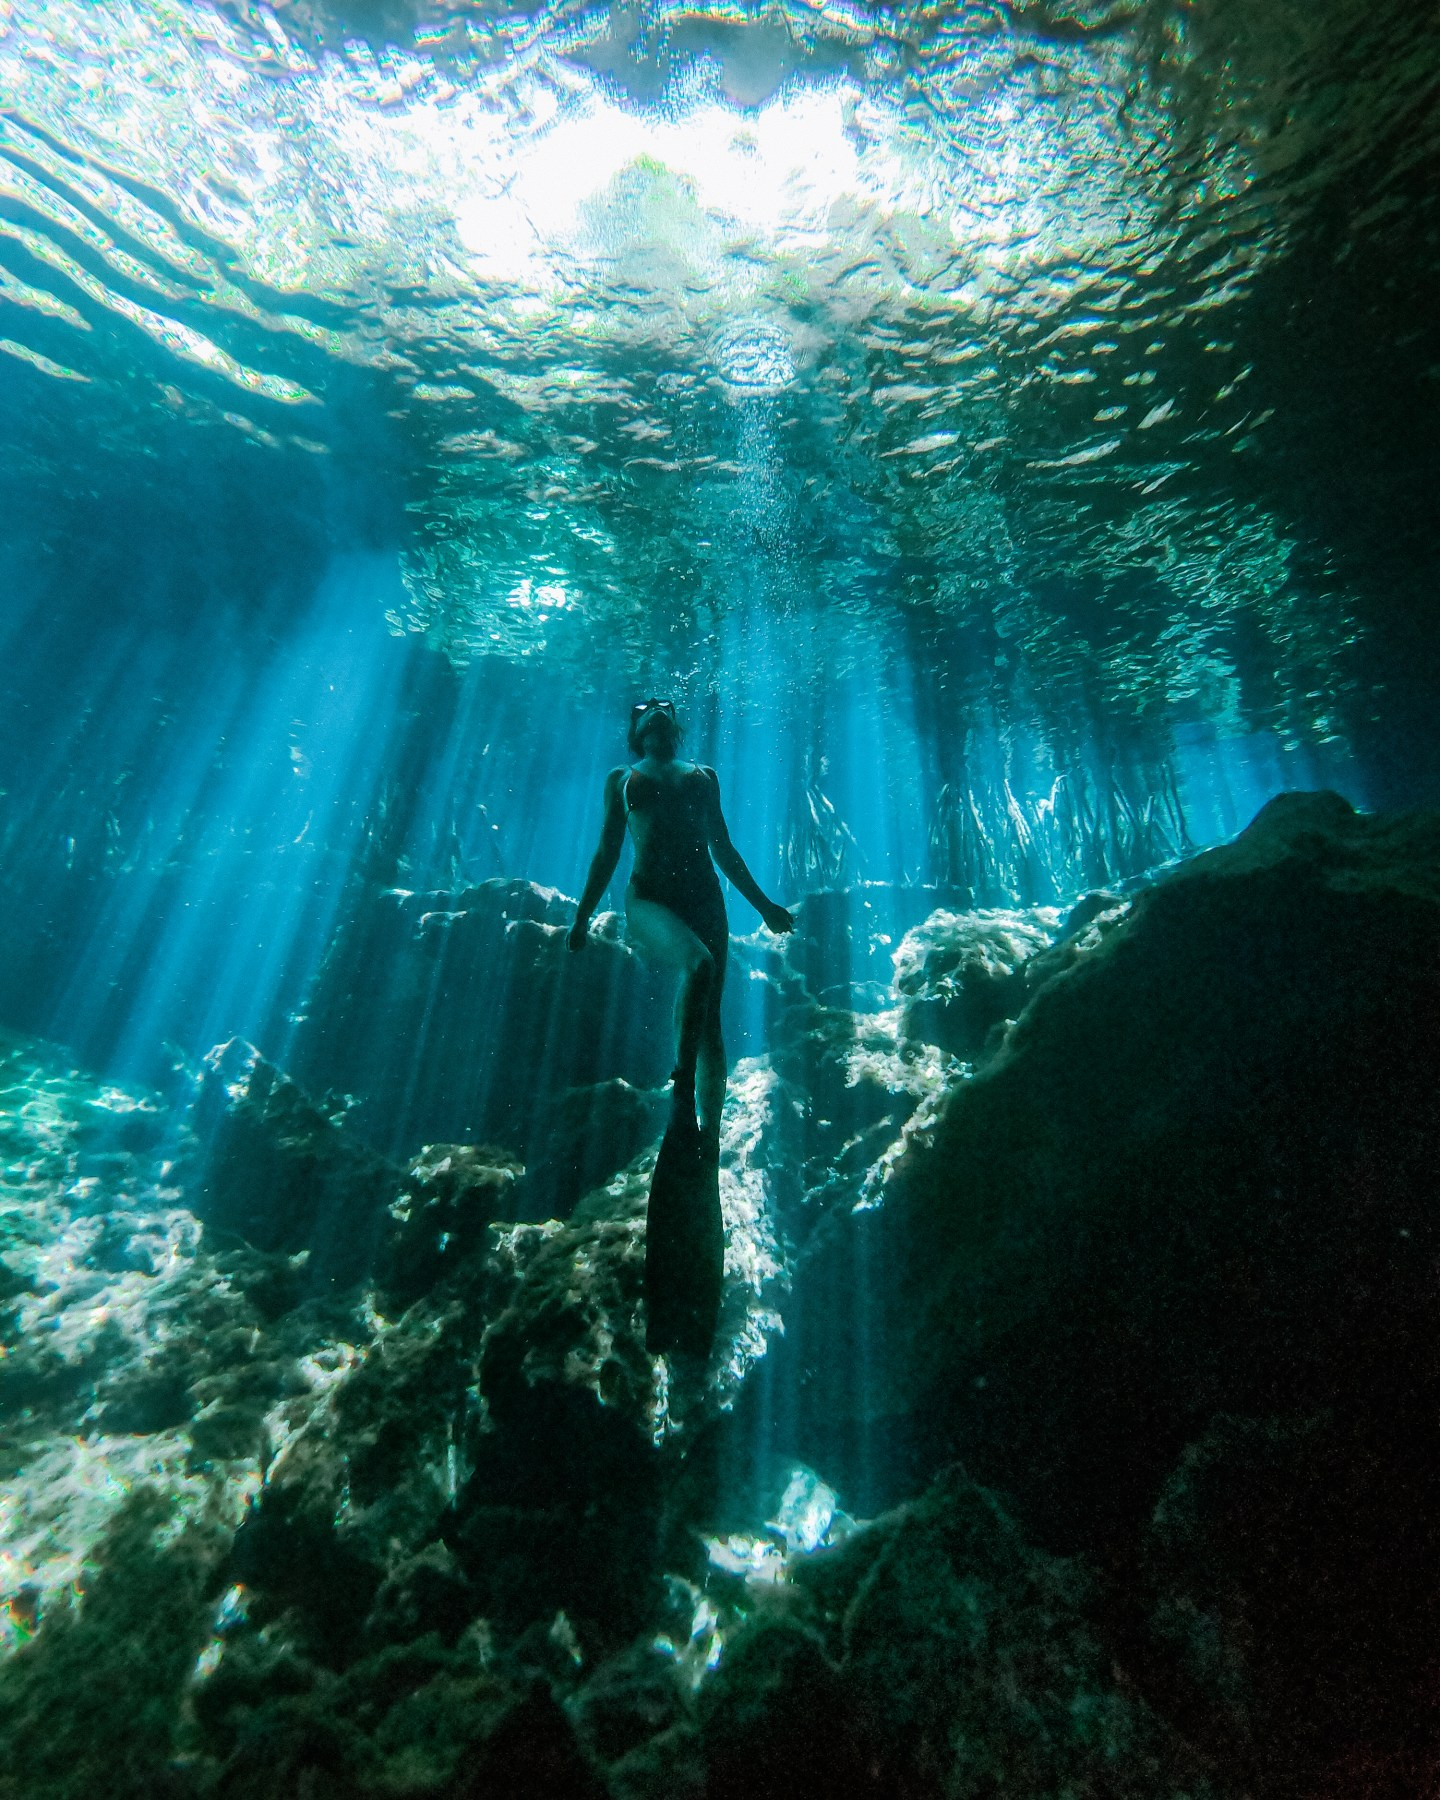 Cenote Cristalino Quintana Roo. This guide gives you tips for all of the best cenotes in Tulum and the best cenotes near Tulum including what to pack for the best Tulum cenotes and more. If you are looking for day trips from Tulum, check out the best cenotes in Quintana Roo and best cenotes in Yucatan for ideas!   Tulum cenotes photography   cenotes Mexico tulum   cenotes tulum riviera maya   best cenotes in quintana roo   cenotes quintana roo   cenotes in playa del carmen